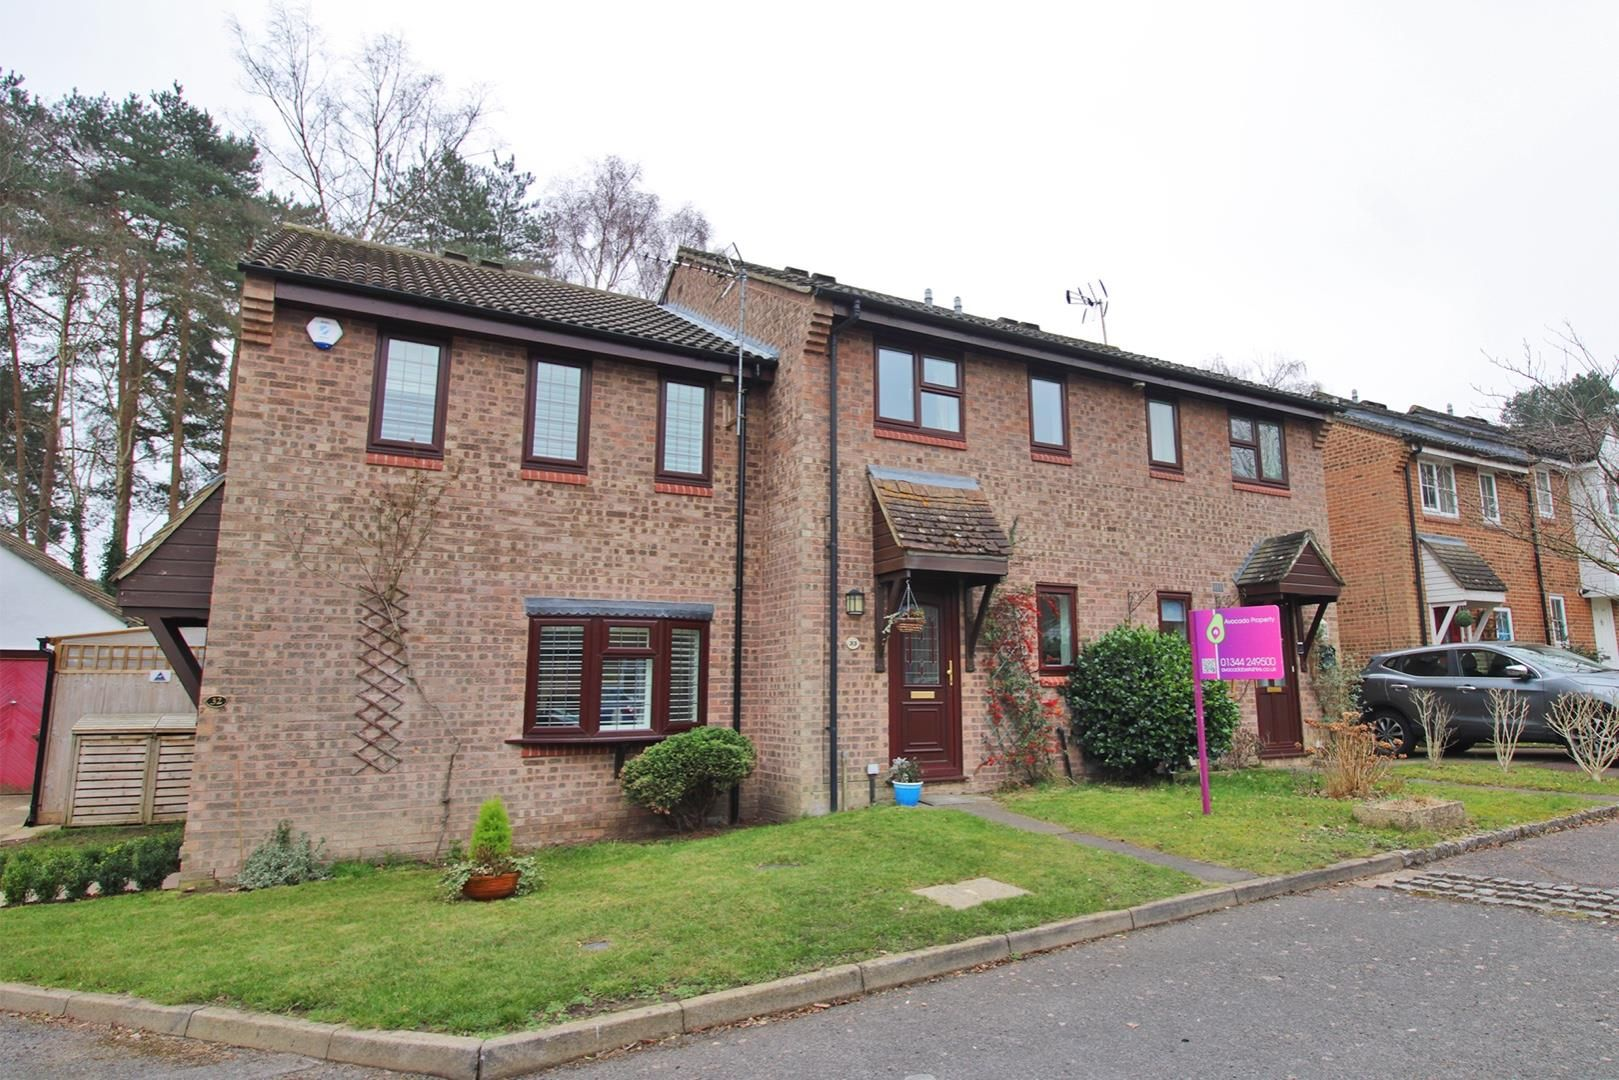 2 bed terraced for sale in Forest Park, RG12